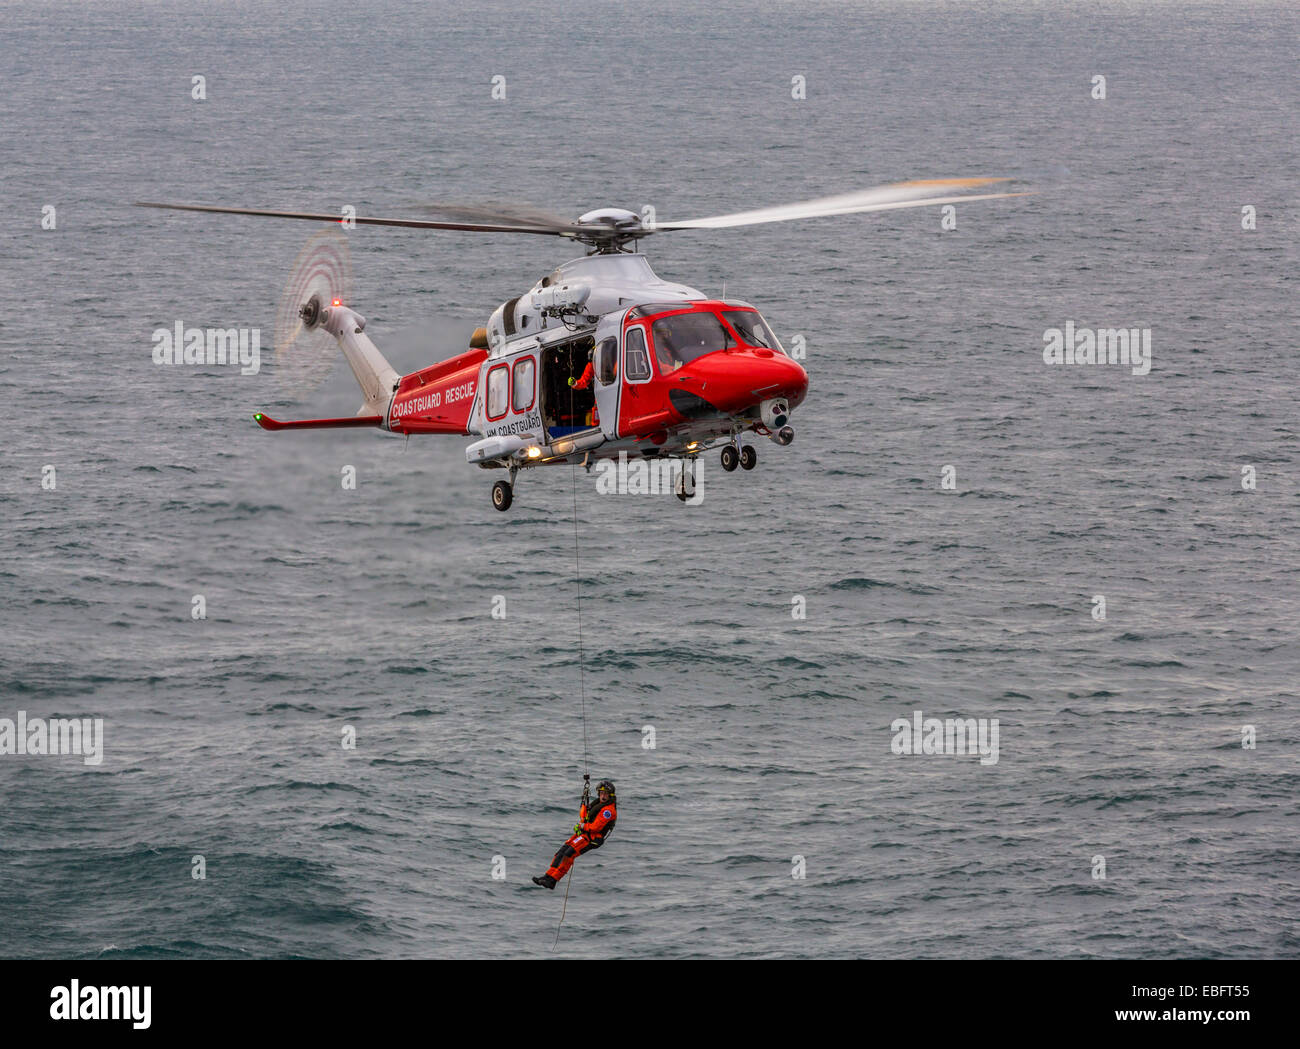 A view of an Augusta HM Coastguard Search and Rescue helicopter with the winchman lowered to the sea - Stock Image